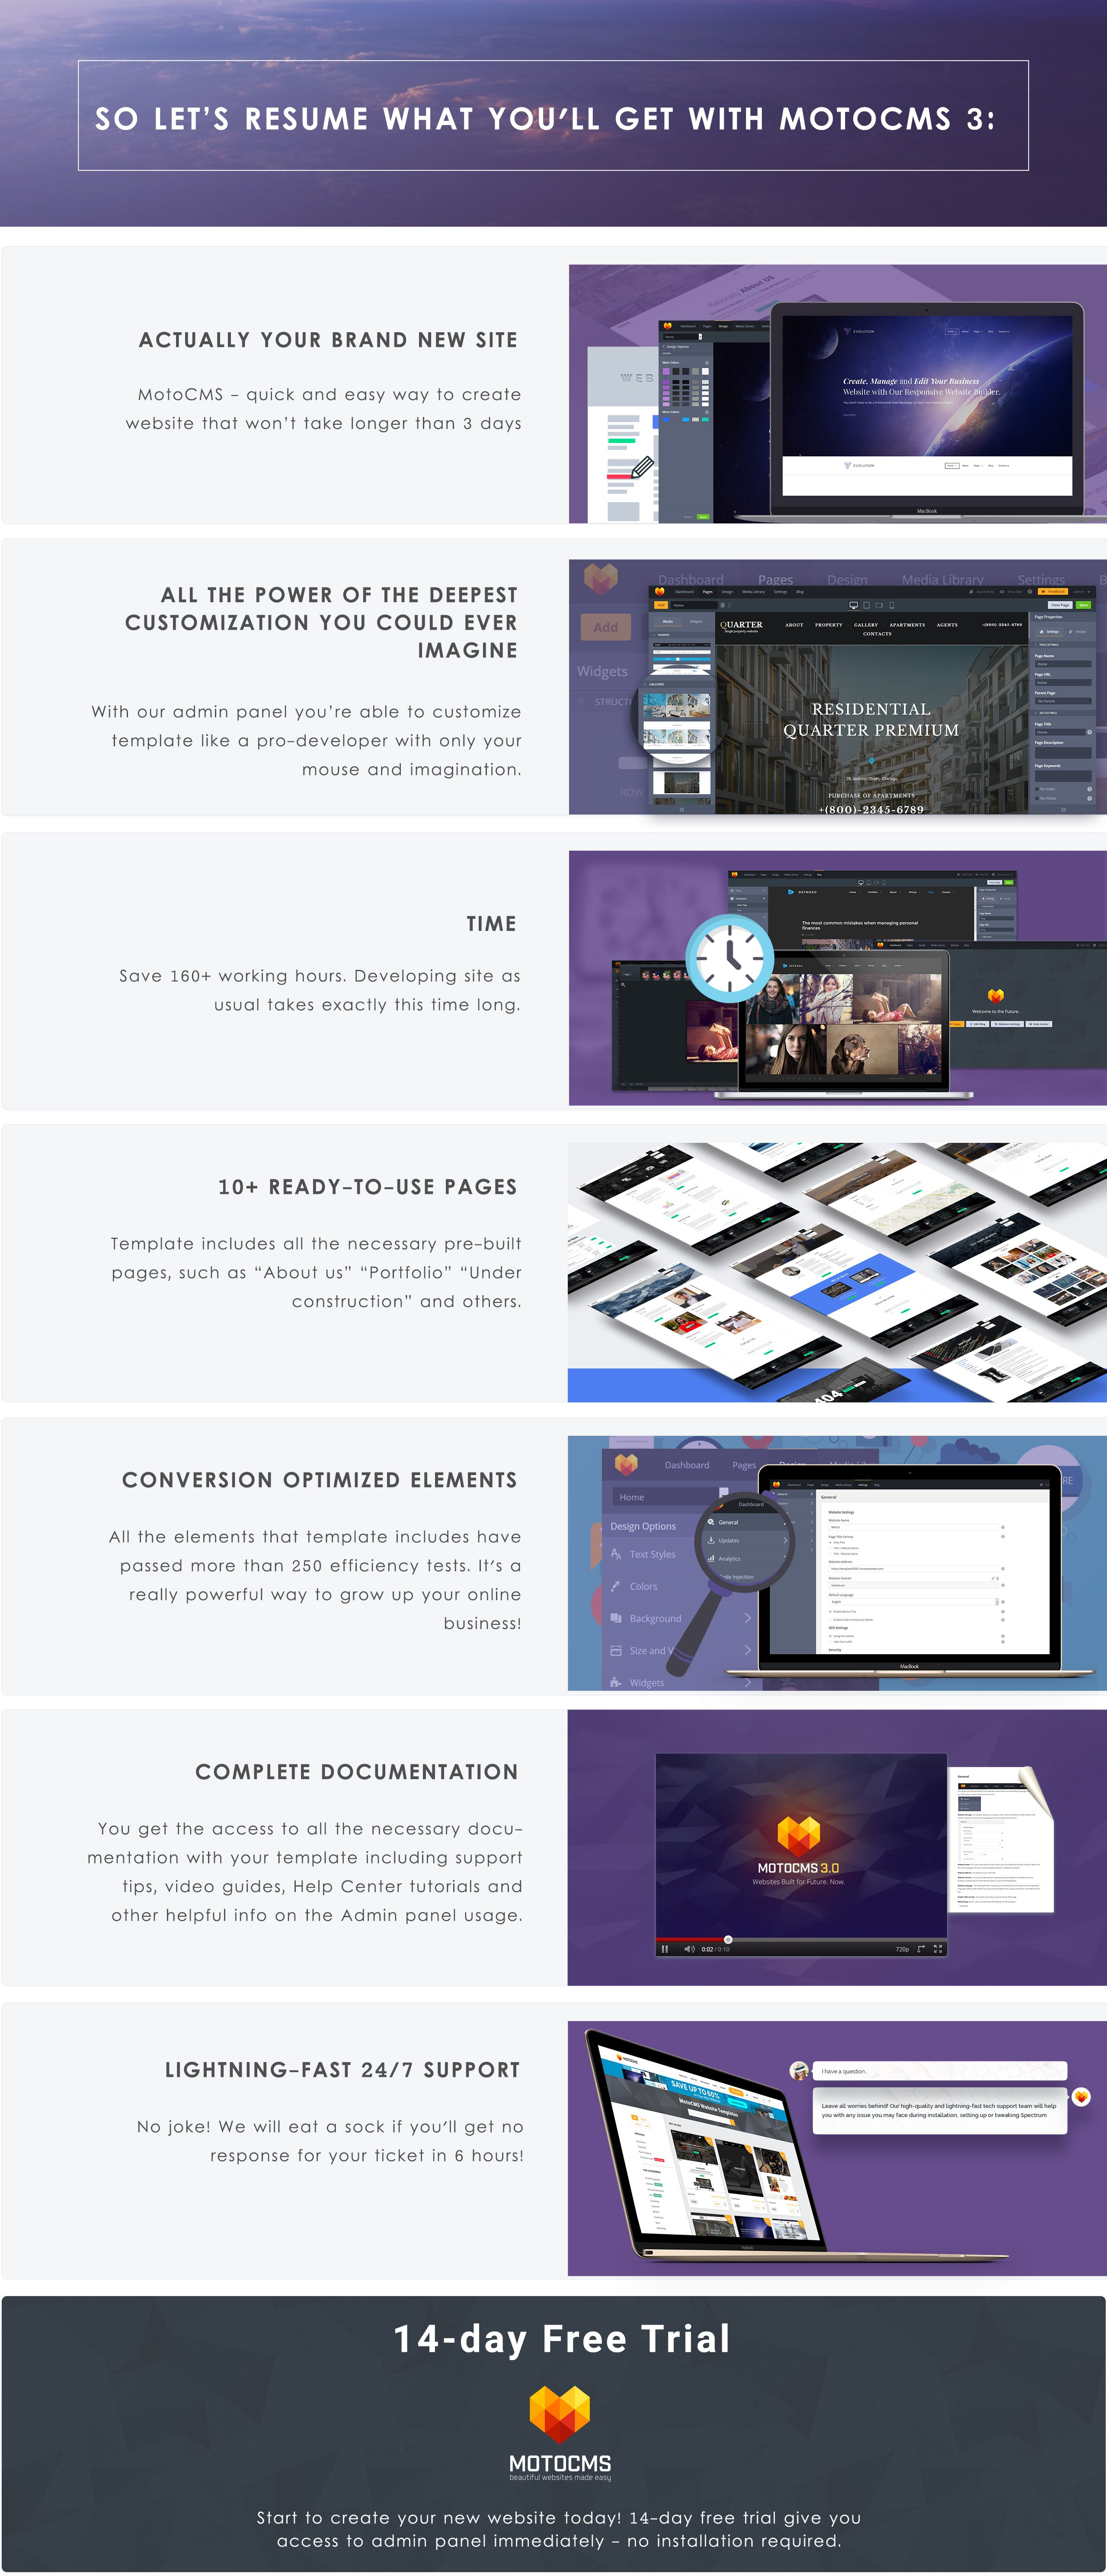 Bradstone - Colleges & Universities Moto CMS 3 Template